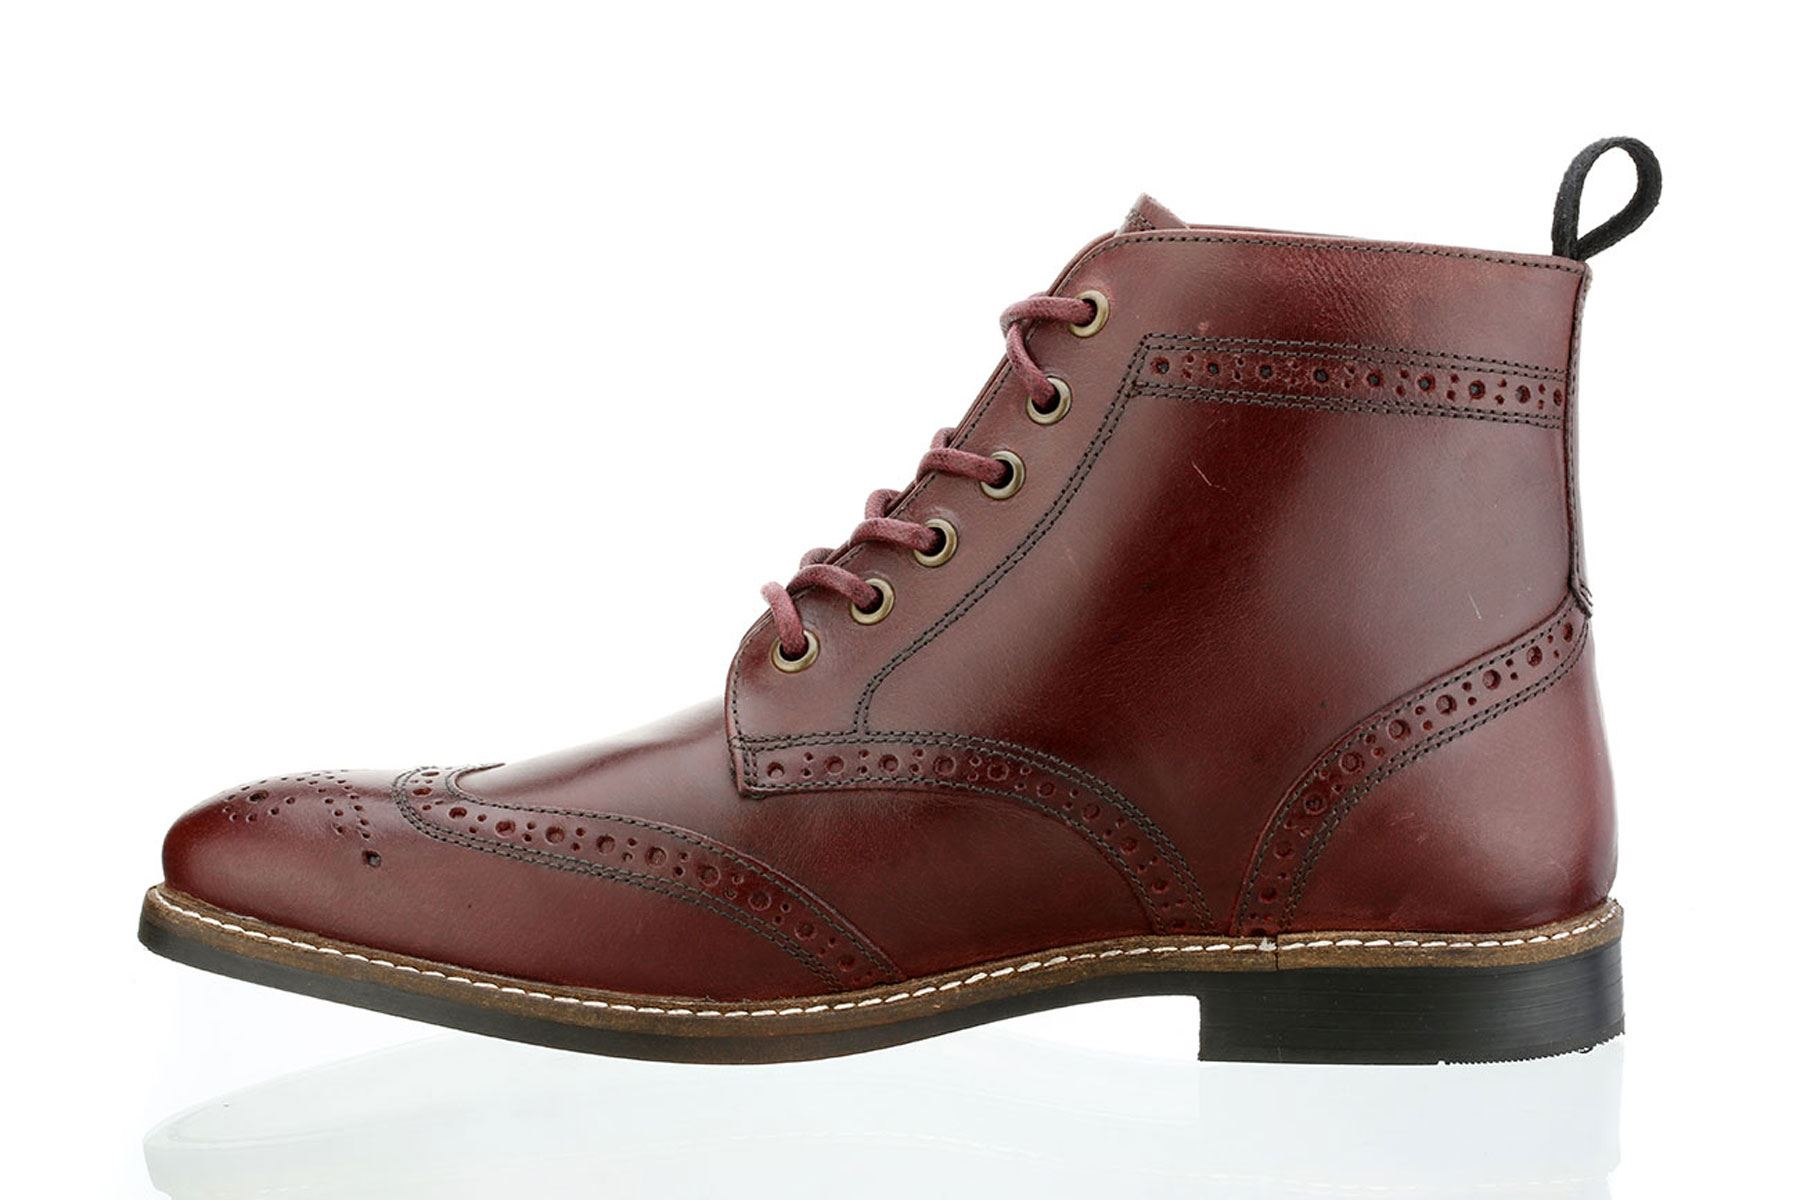 red tape glaven brogue lace up leather mens boots ebay